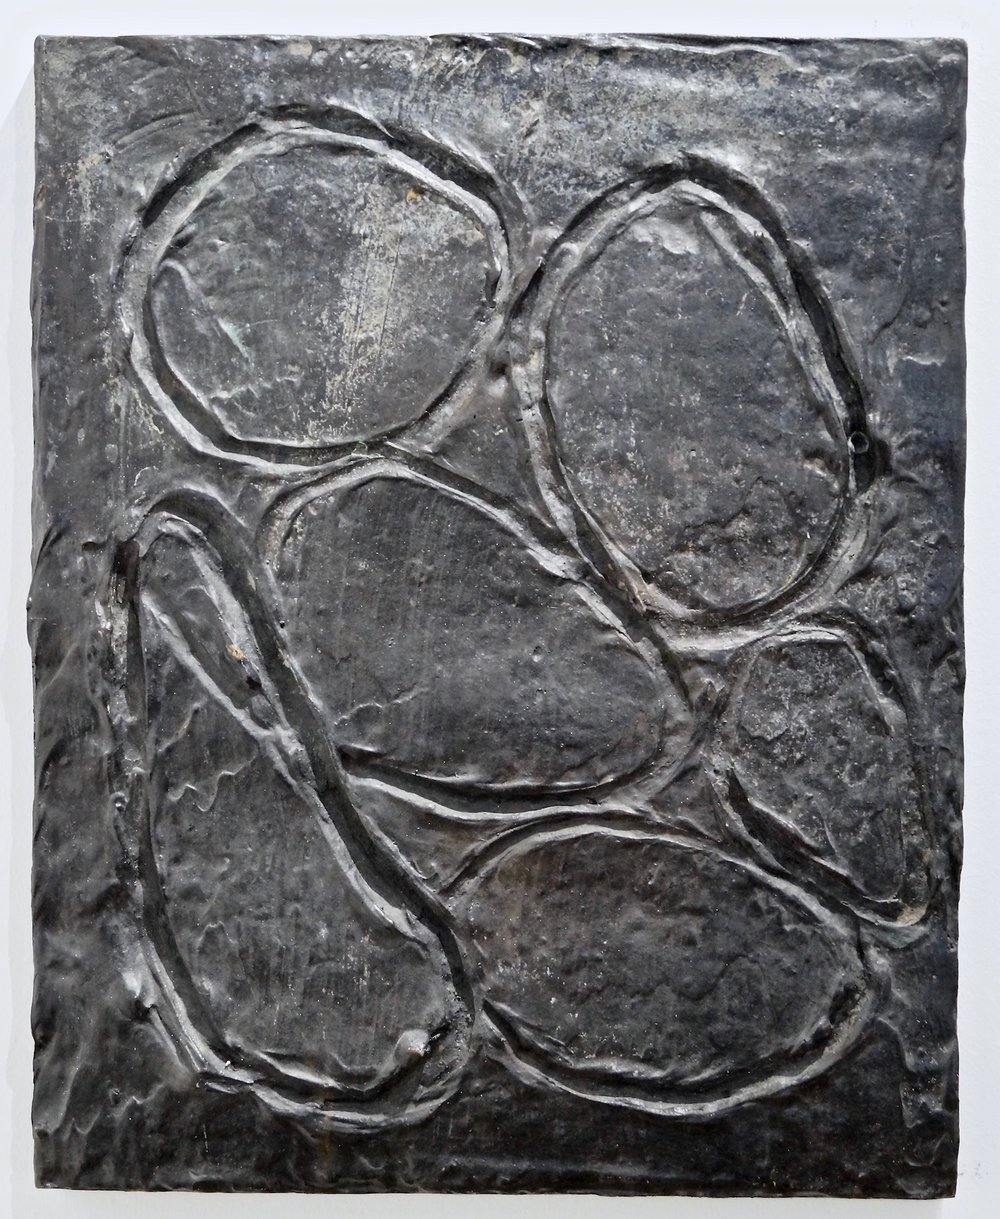 Günther Förg untitled, 1991 bronze 49 x 39 cm | 19 1/3 x 15 1/3 in Expl. 3/14 GF/O 2